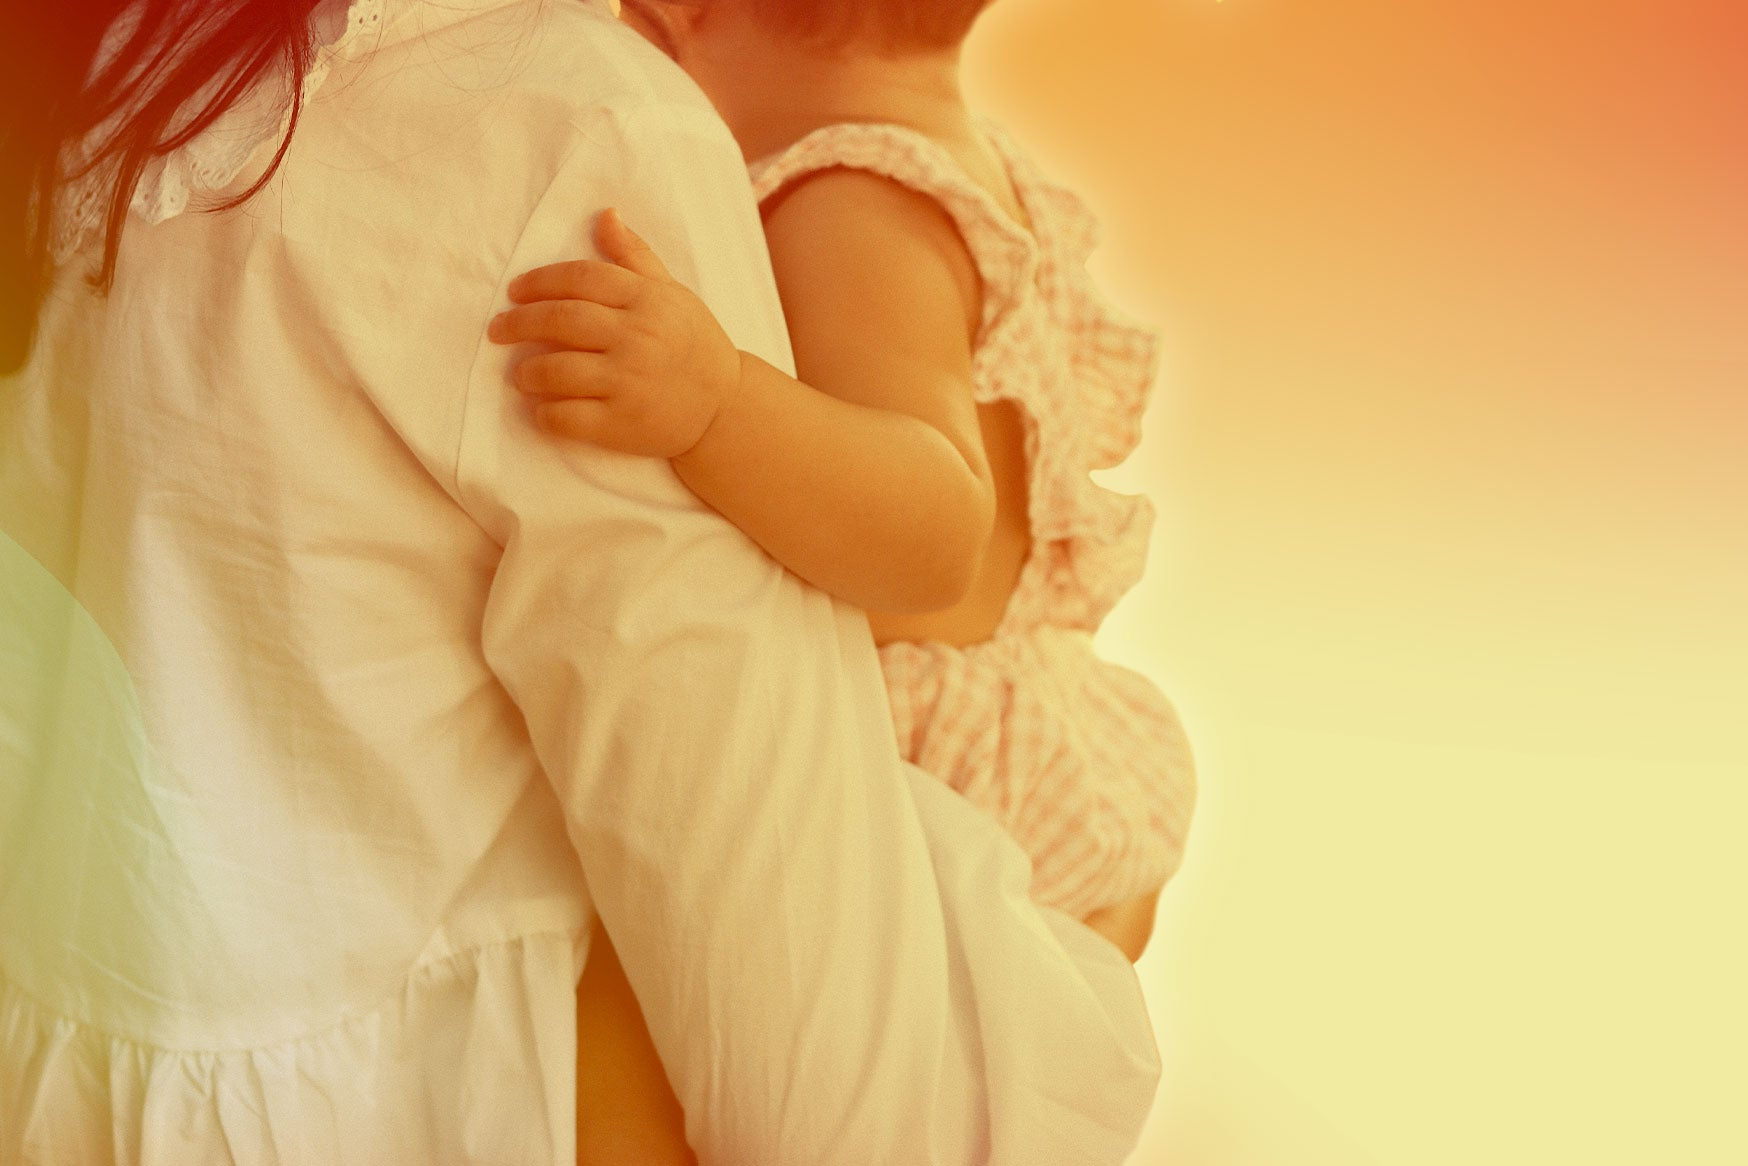 A person wearing a long-sleeved white shirt while holding a baby.